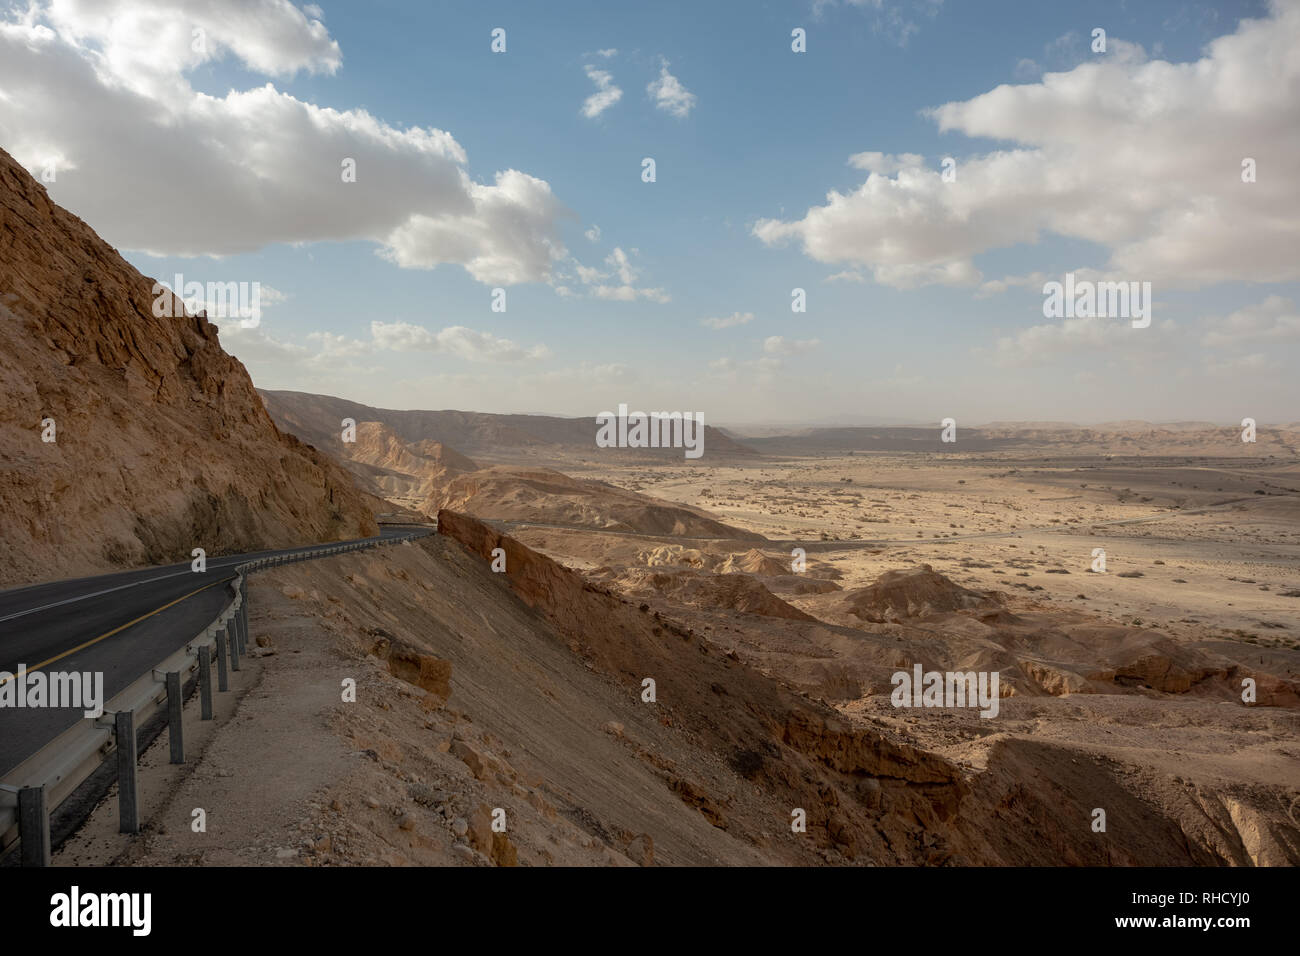 Route 40 through Mitzpe Ramon in Southern Israel - Stock Image